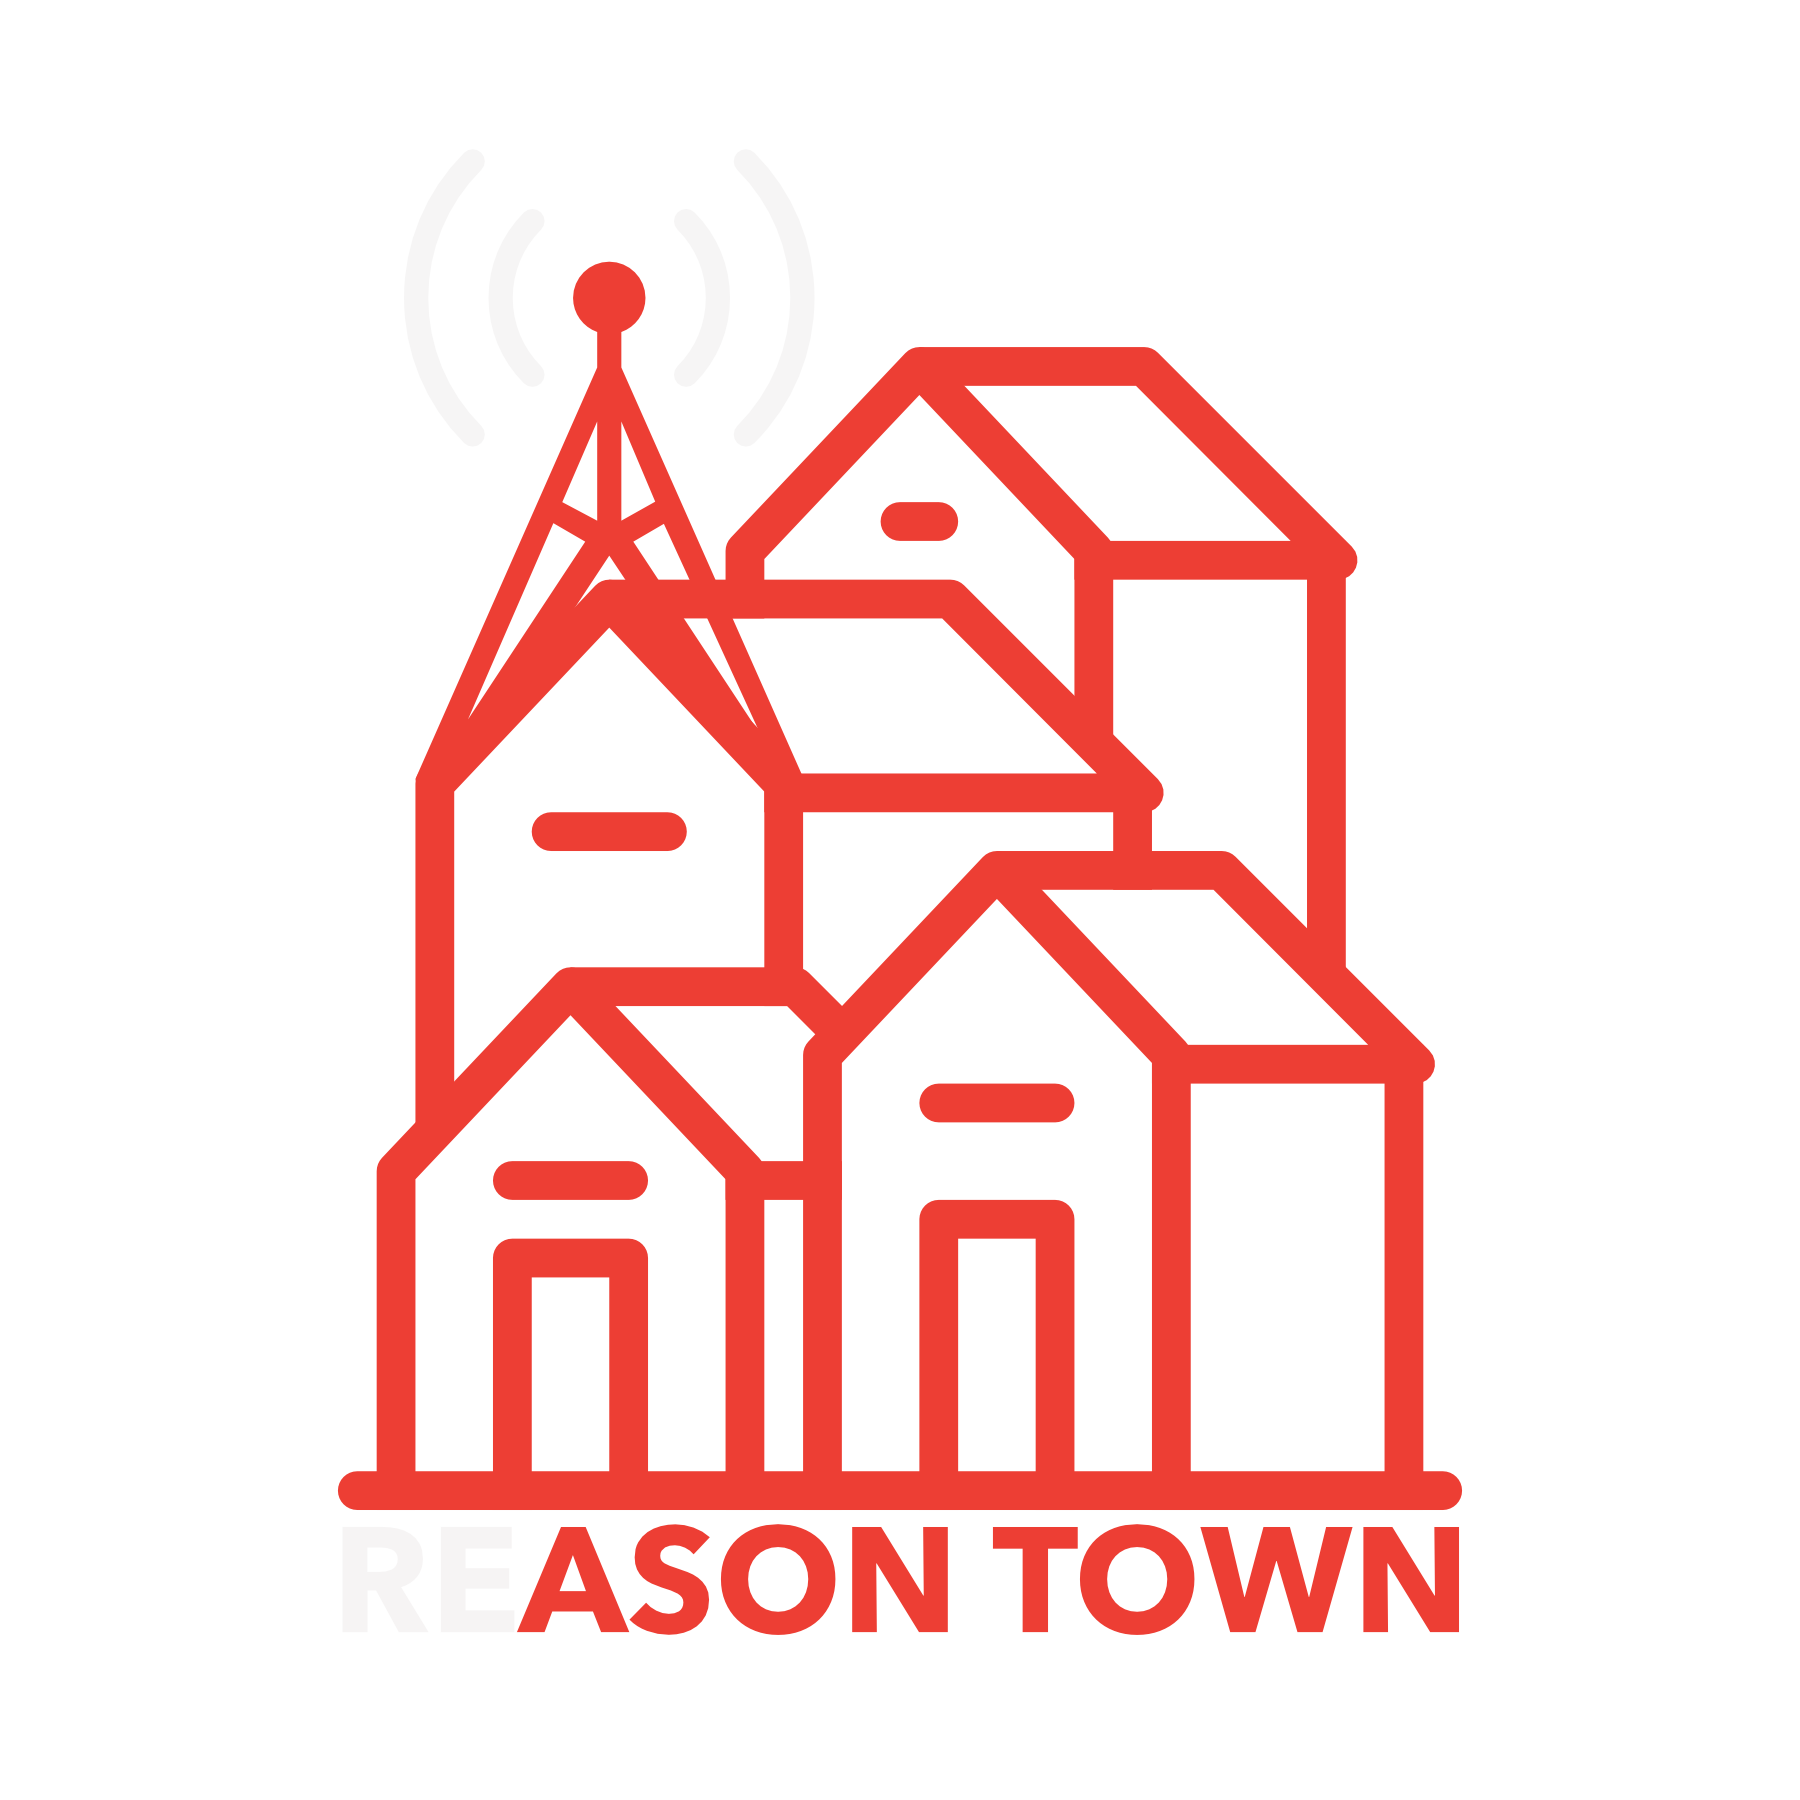 Reasontownlogo transparentbg